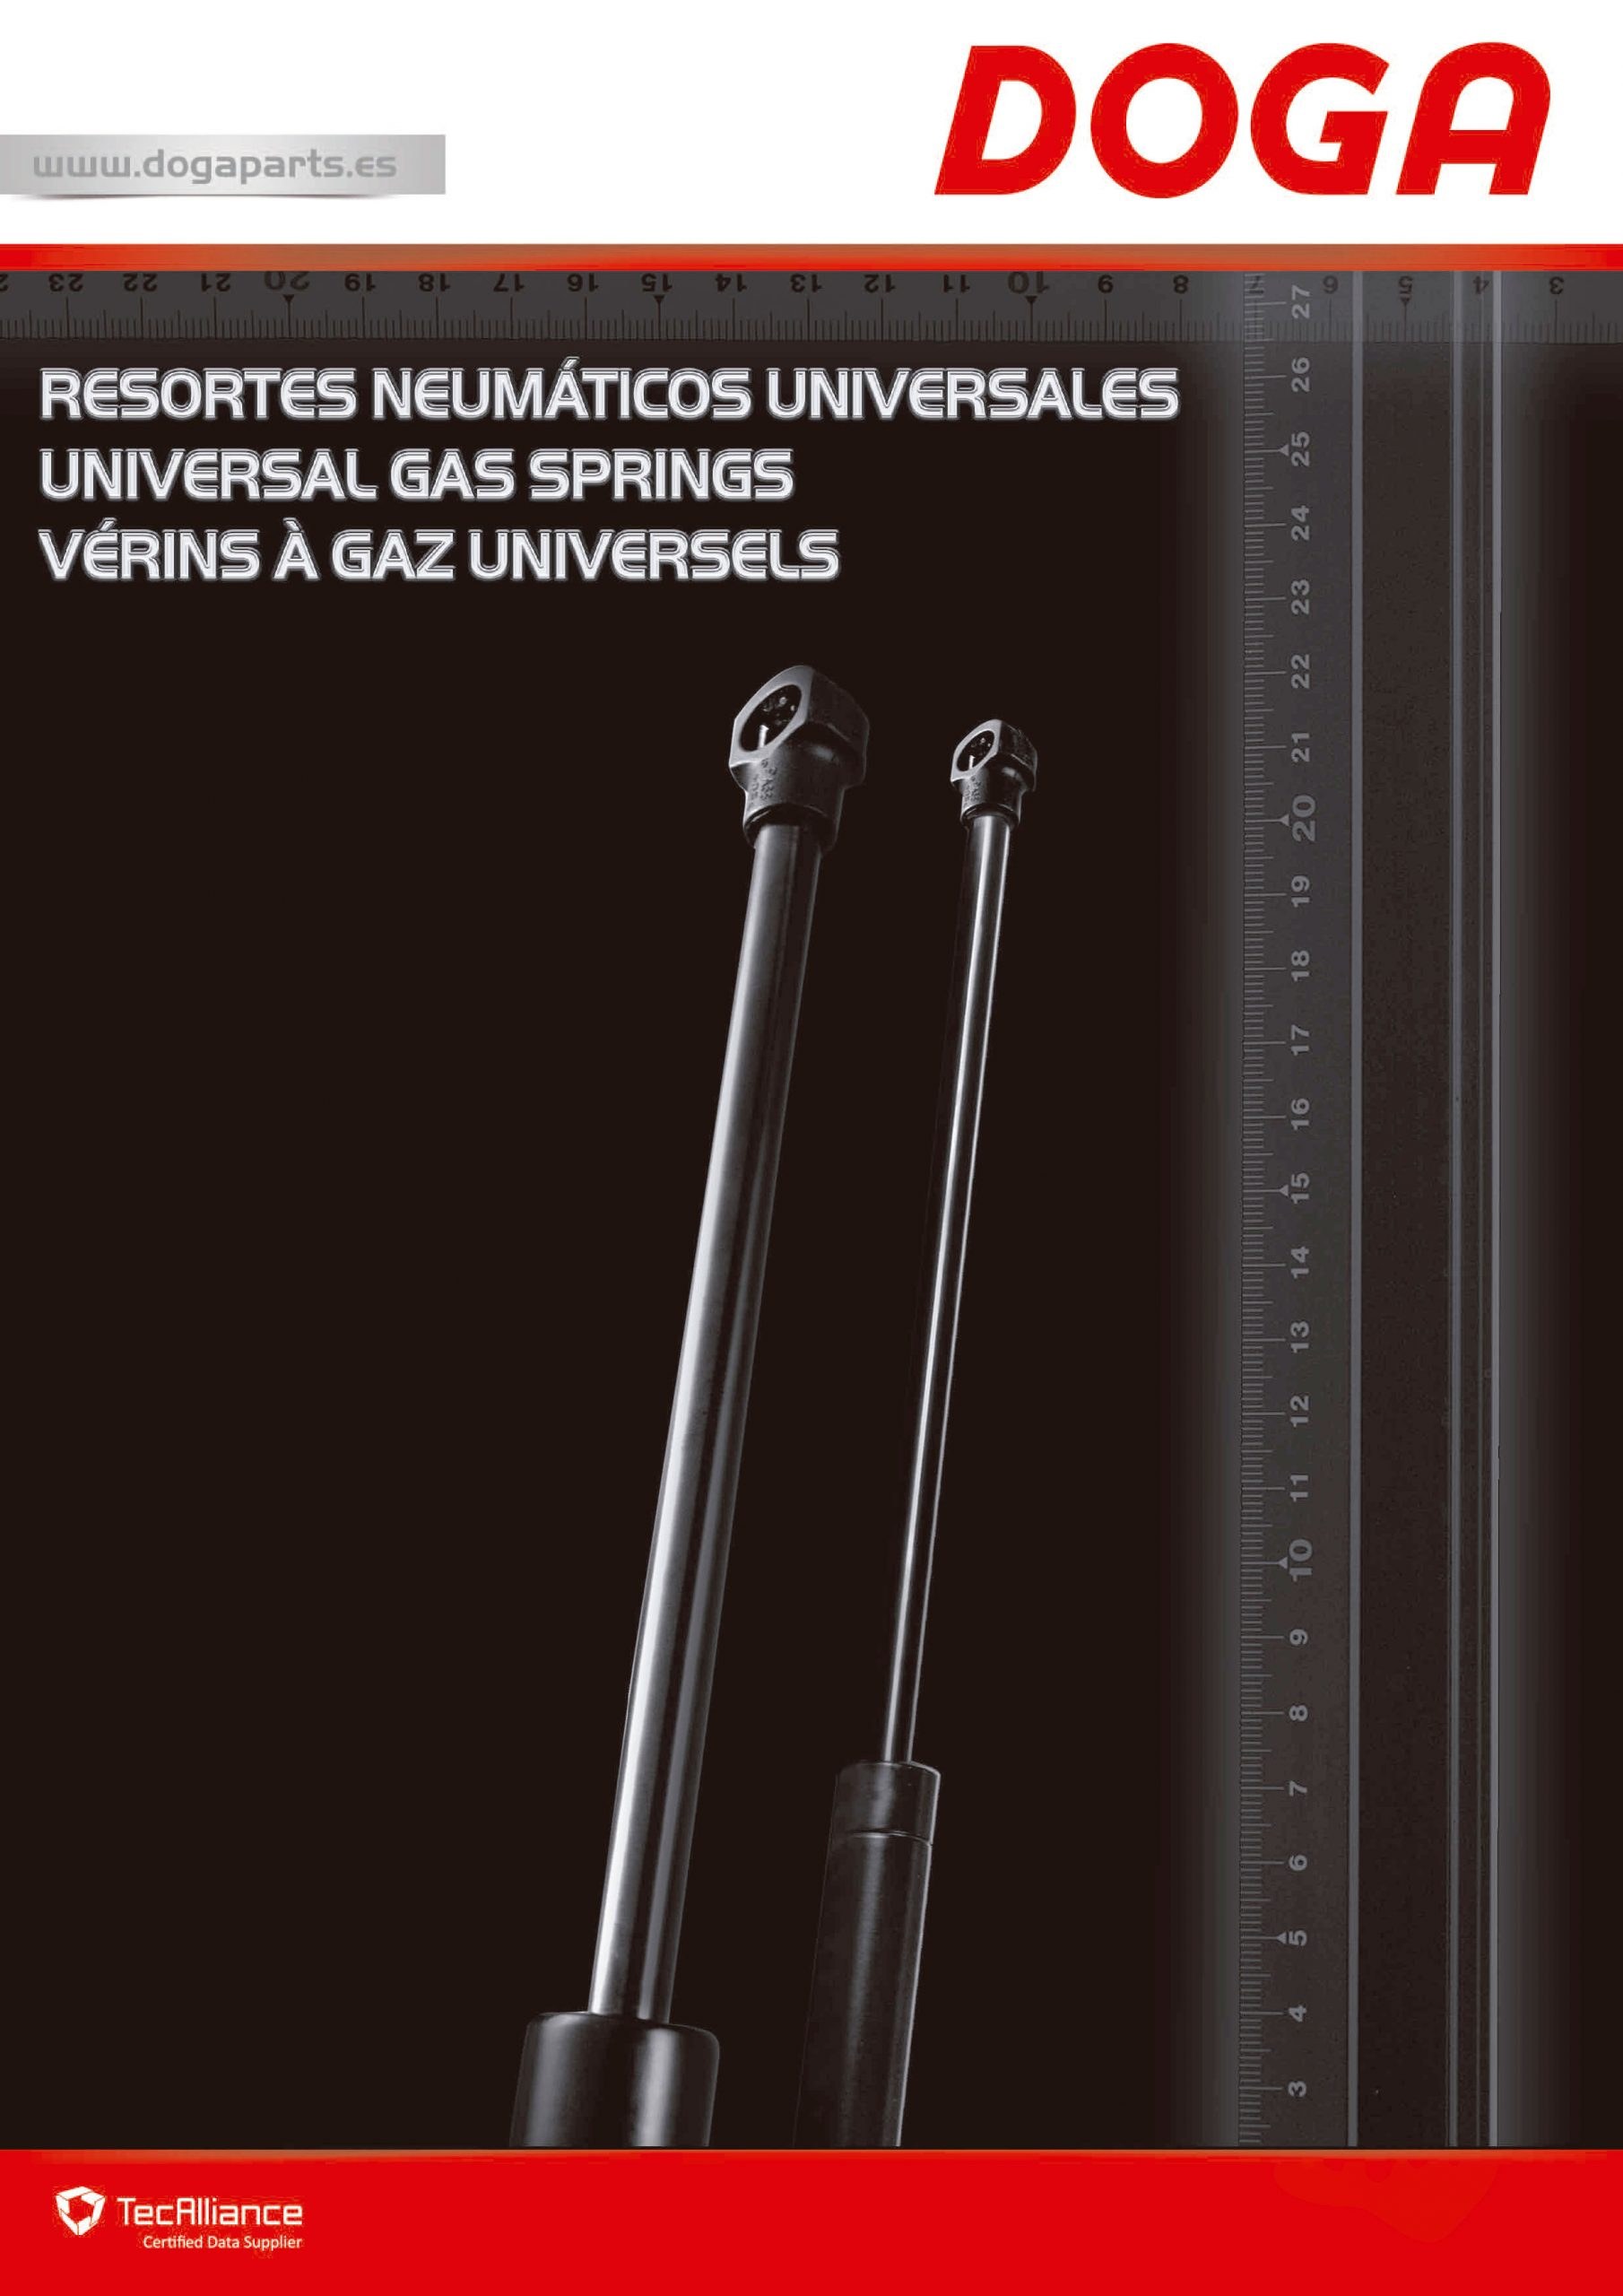 gas_springs_doga_universal